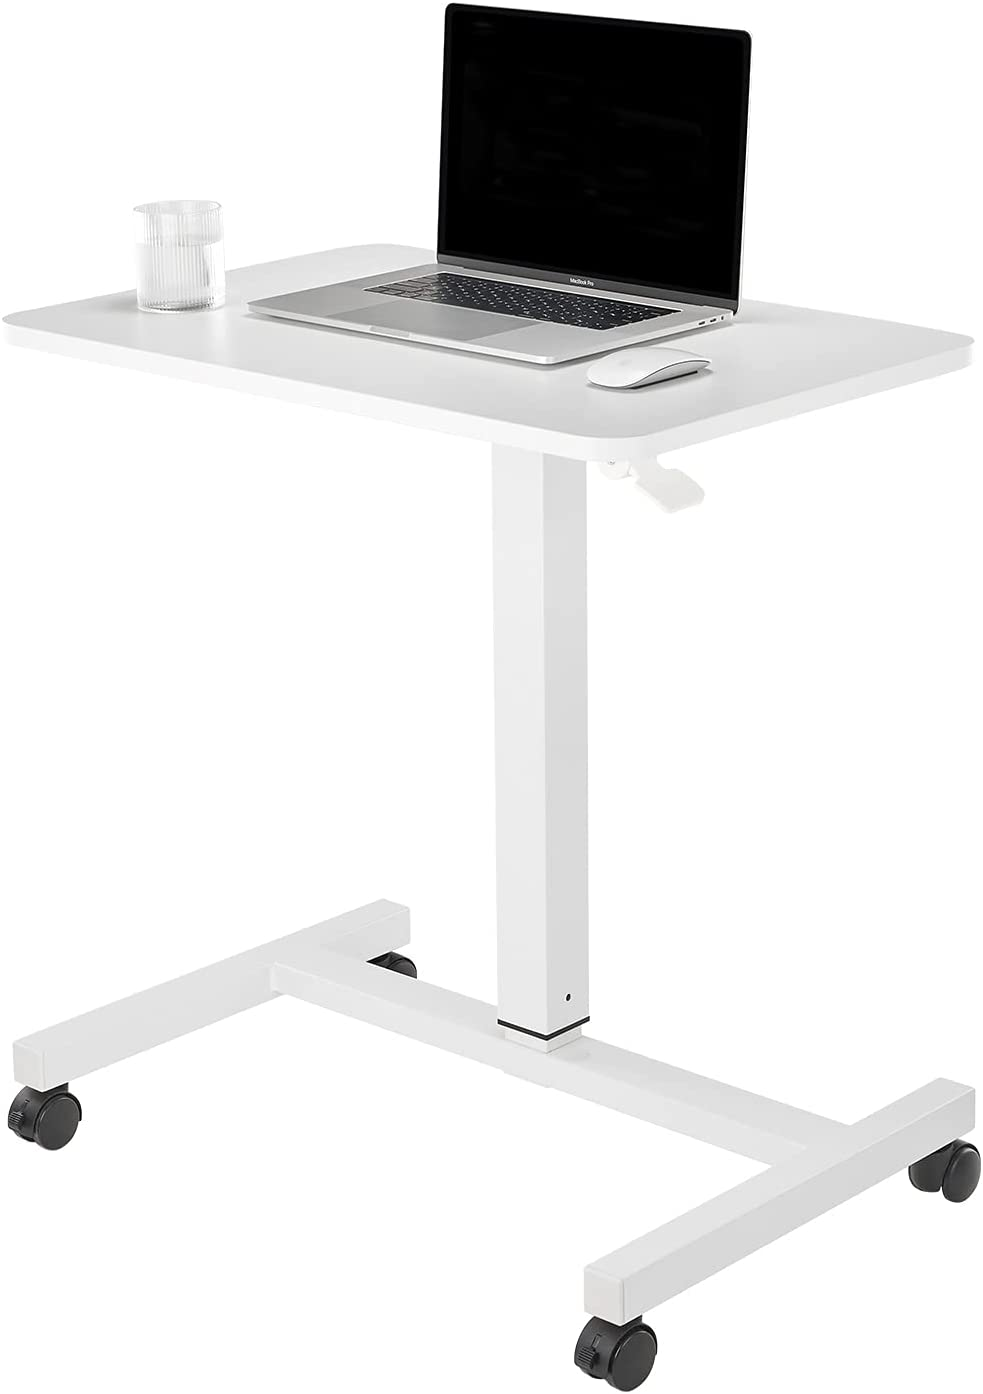 CLATINA Mobile Laptop Desk Pneumatic Sit to Stand Table Height Adjustable Rolling Cart with Lockable Wheels for Home Office Computer Workstation, 28 x 19 Inch White - Fidel